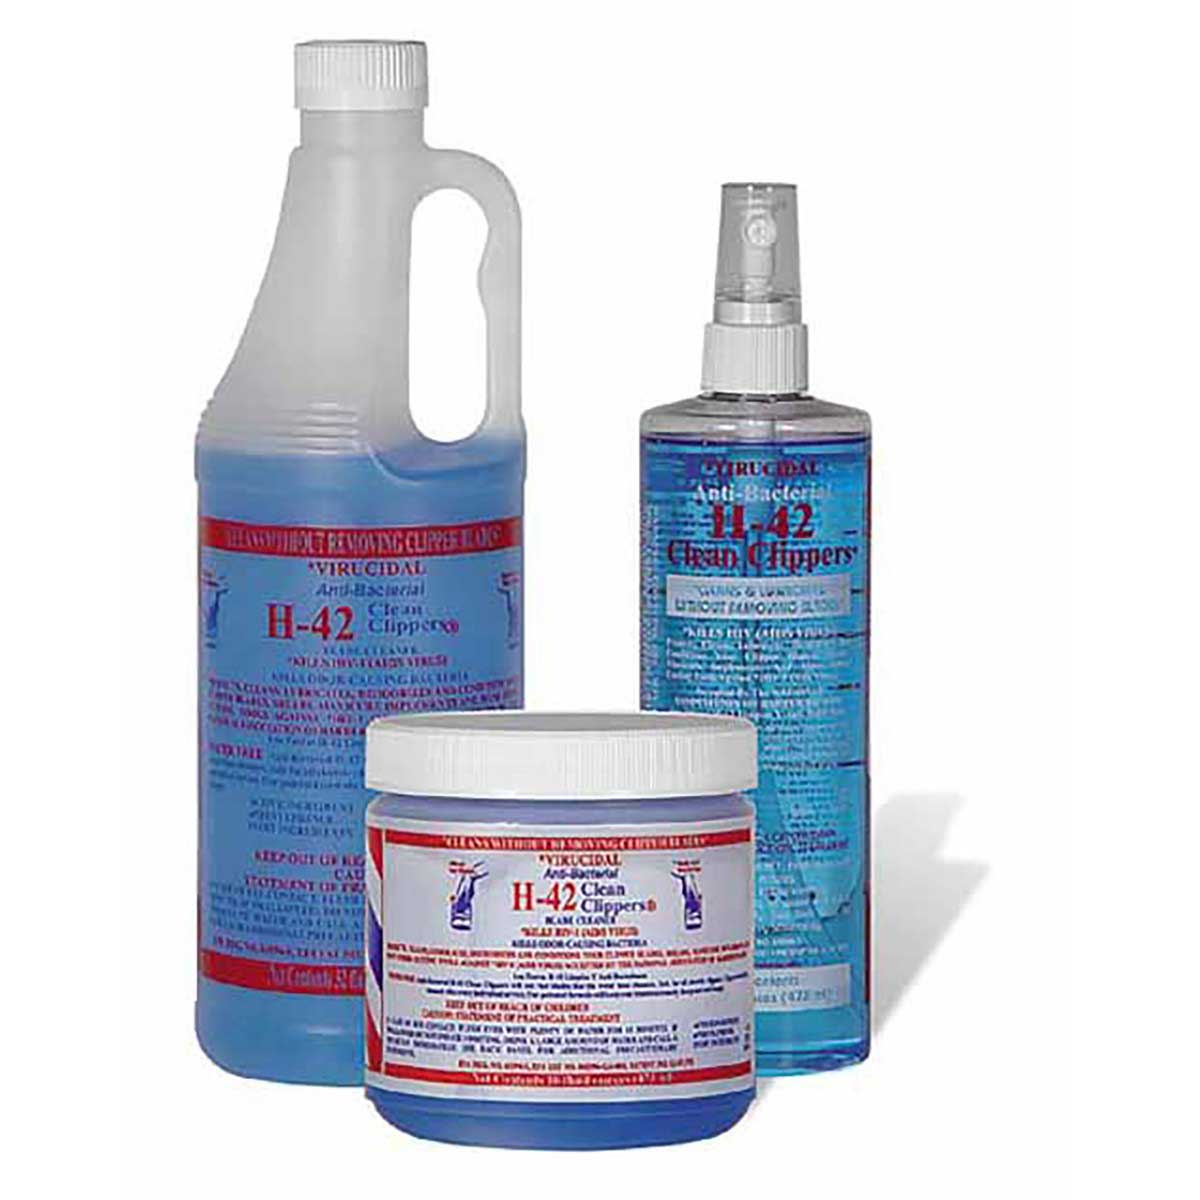 Virucidal Anti-Bacterial H-42 Clean Clippers 128oz/1 Gallon